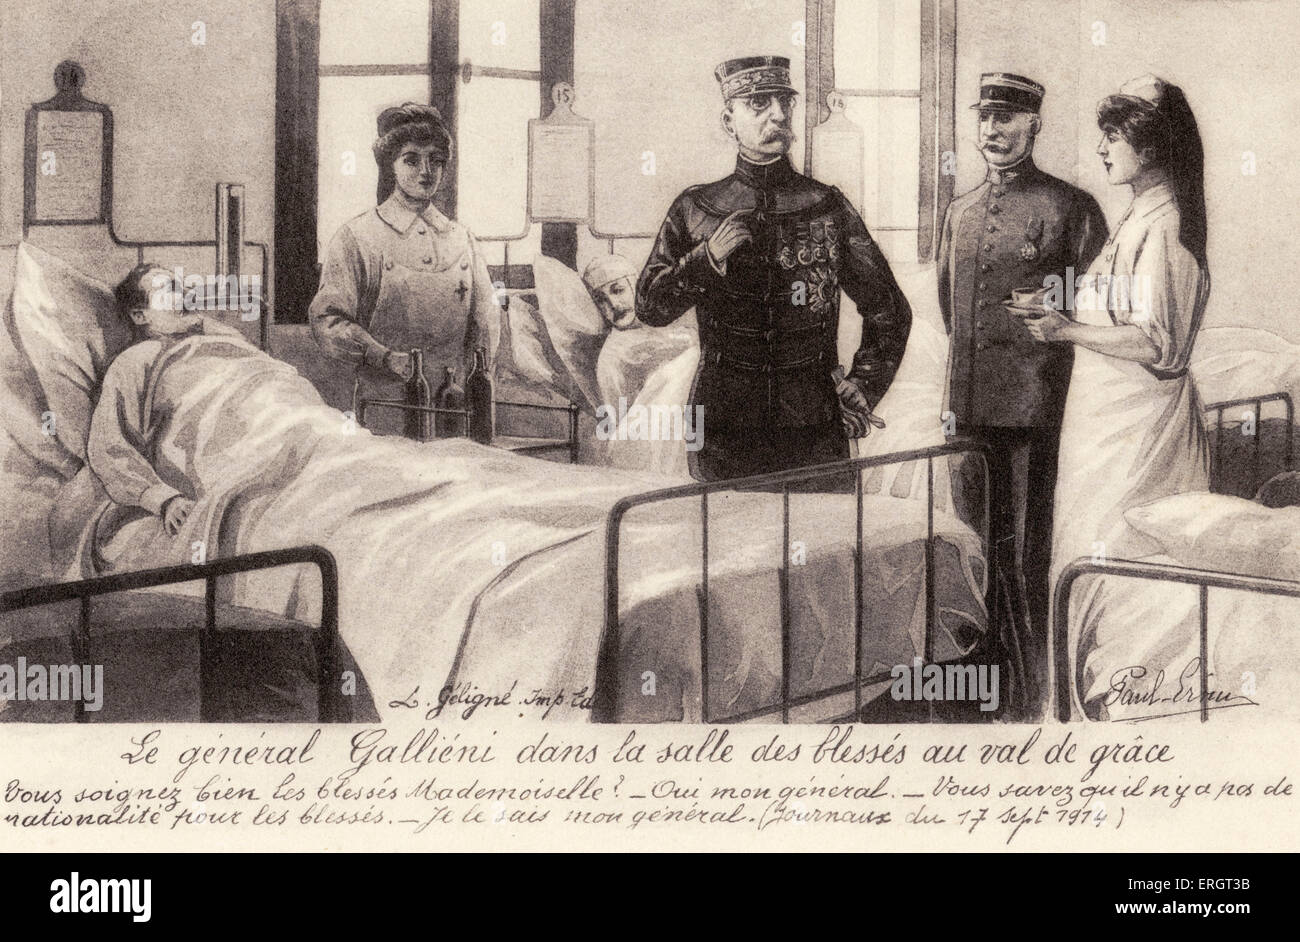 Joseph Gallieni - depicted on a postcard visiting the wounded, 1914 during World War I - French military leader - Stock Image